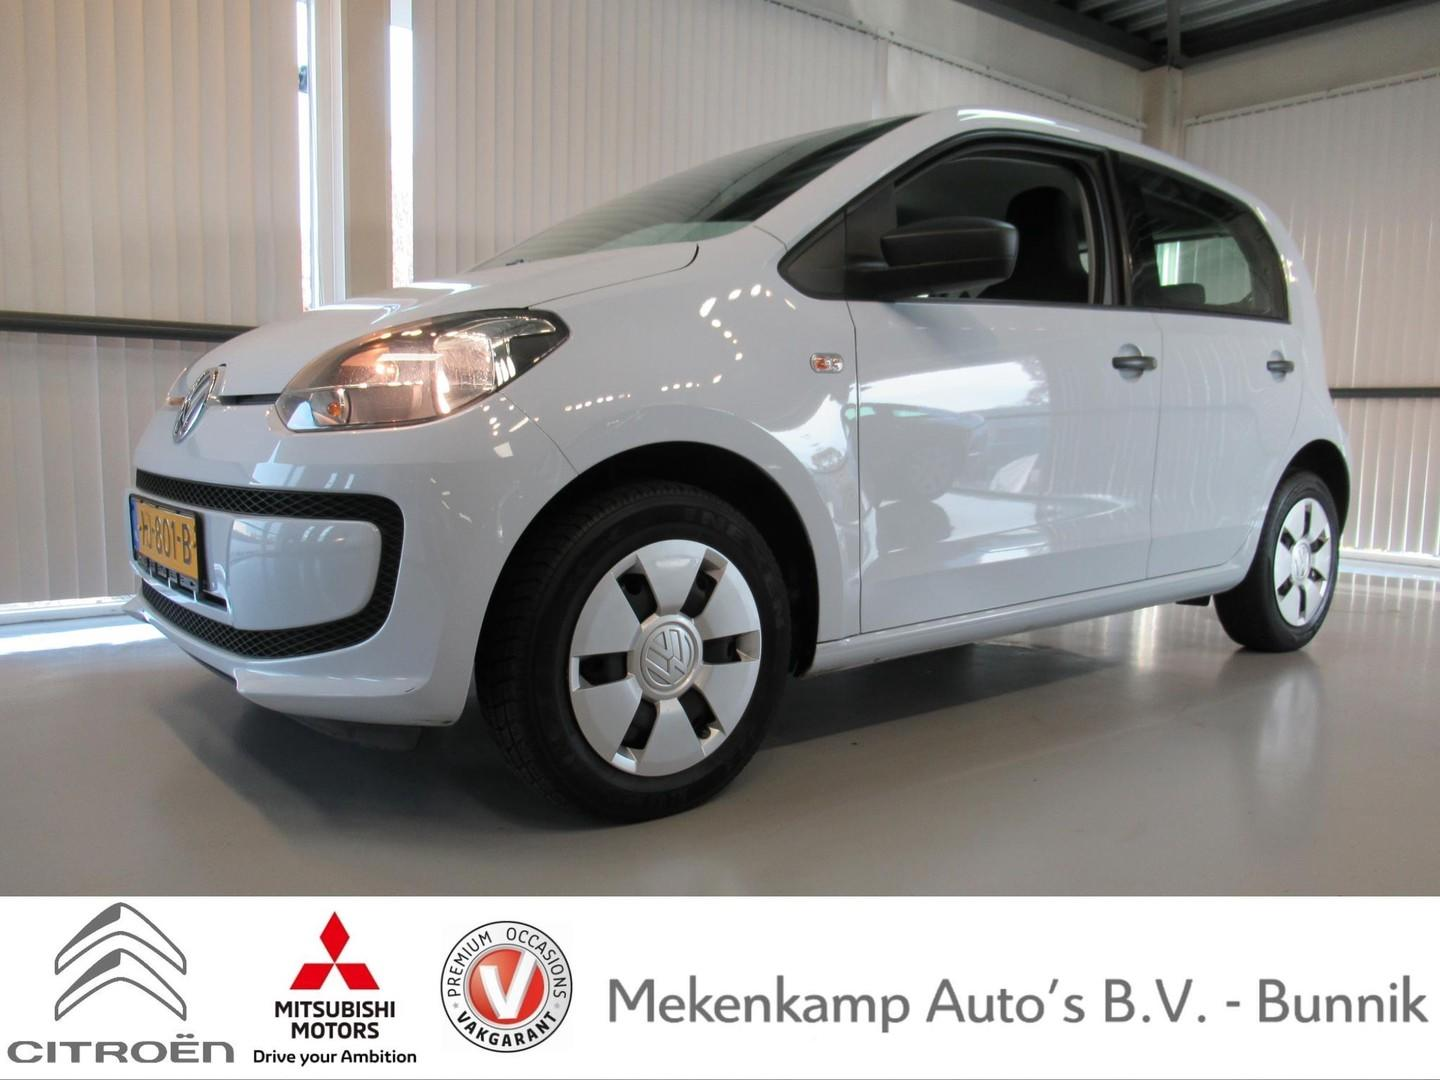 Volkswagen Up! 1.0 take up! 5drs airco/centrale vergrendeling/radio-cd